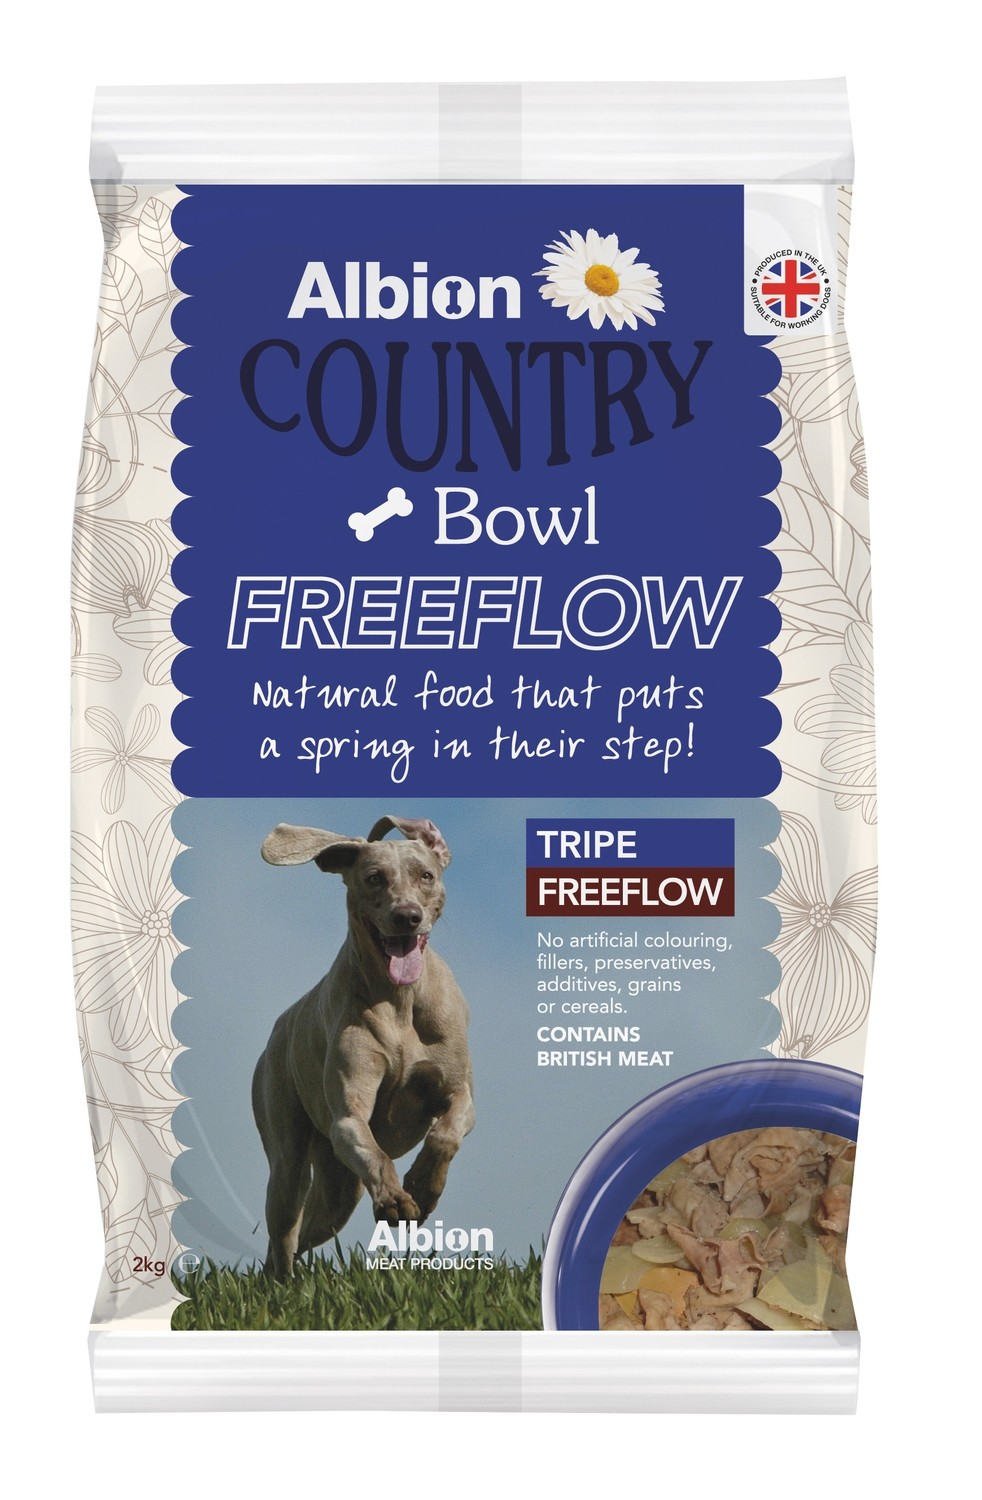 Albion Country Bowl Freeflow Tripe (2kg)